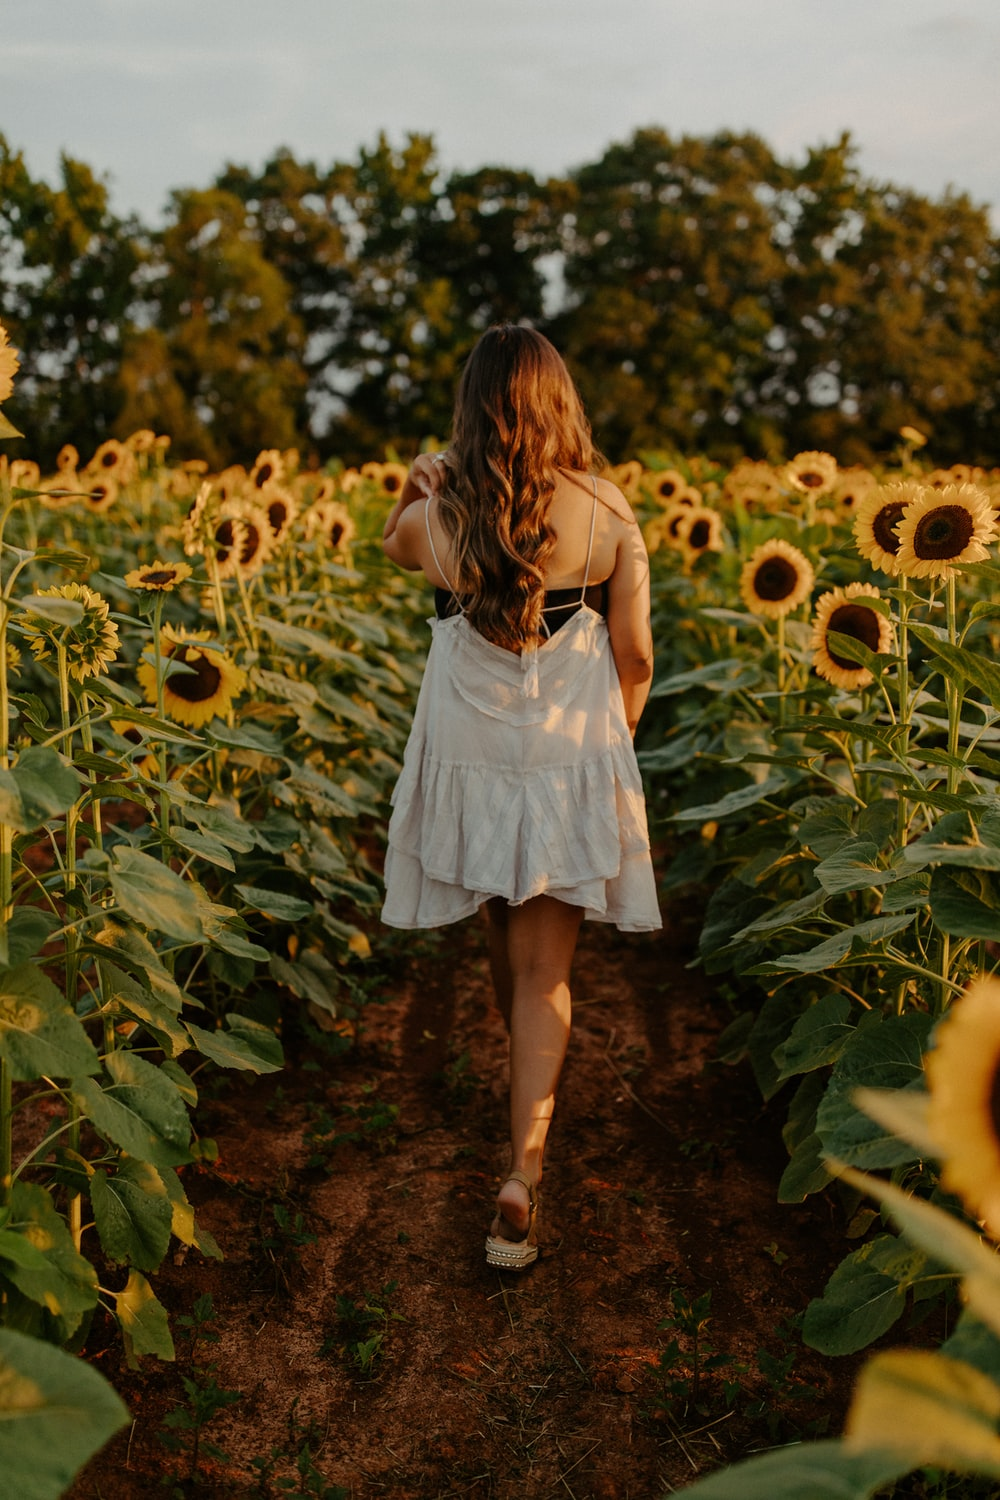 girl in white dress standing on sunflower field during daytime